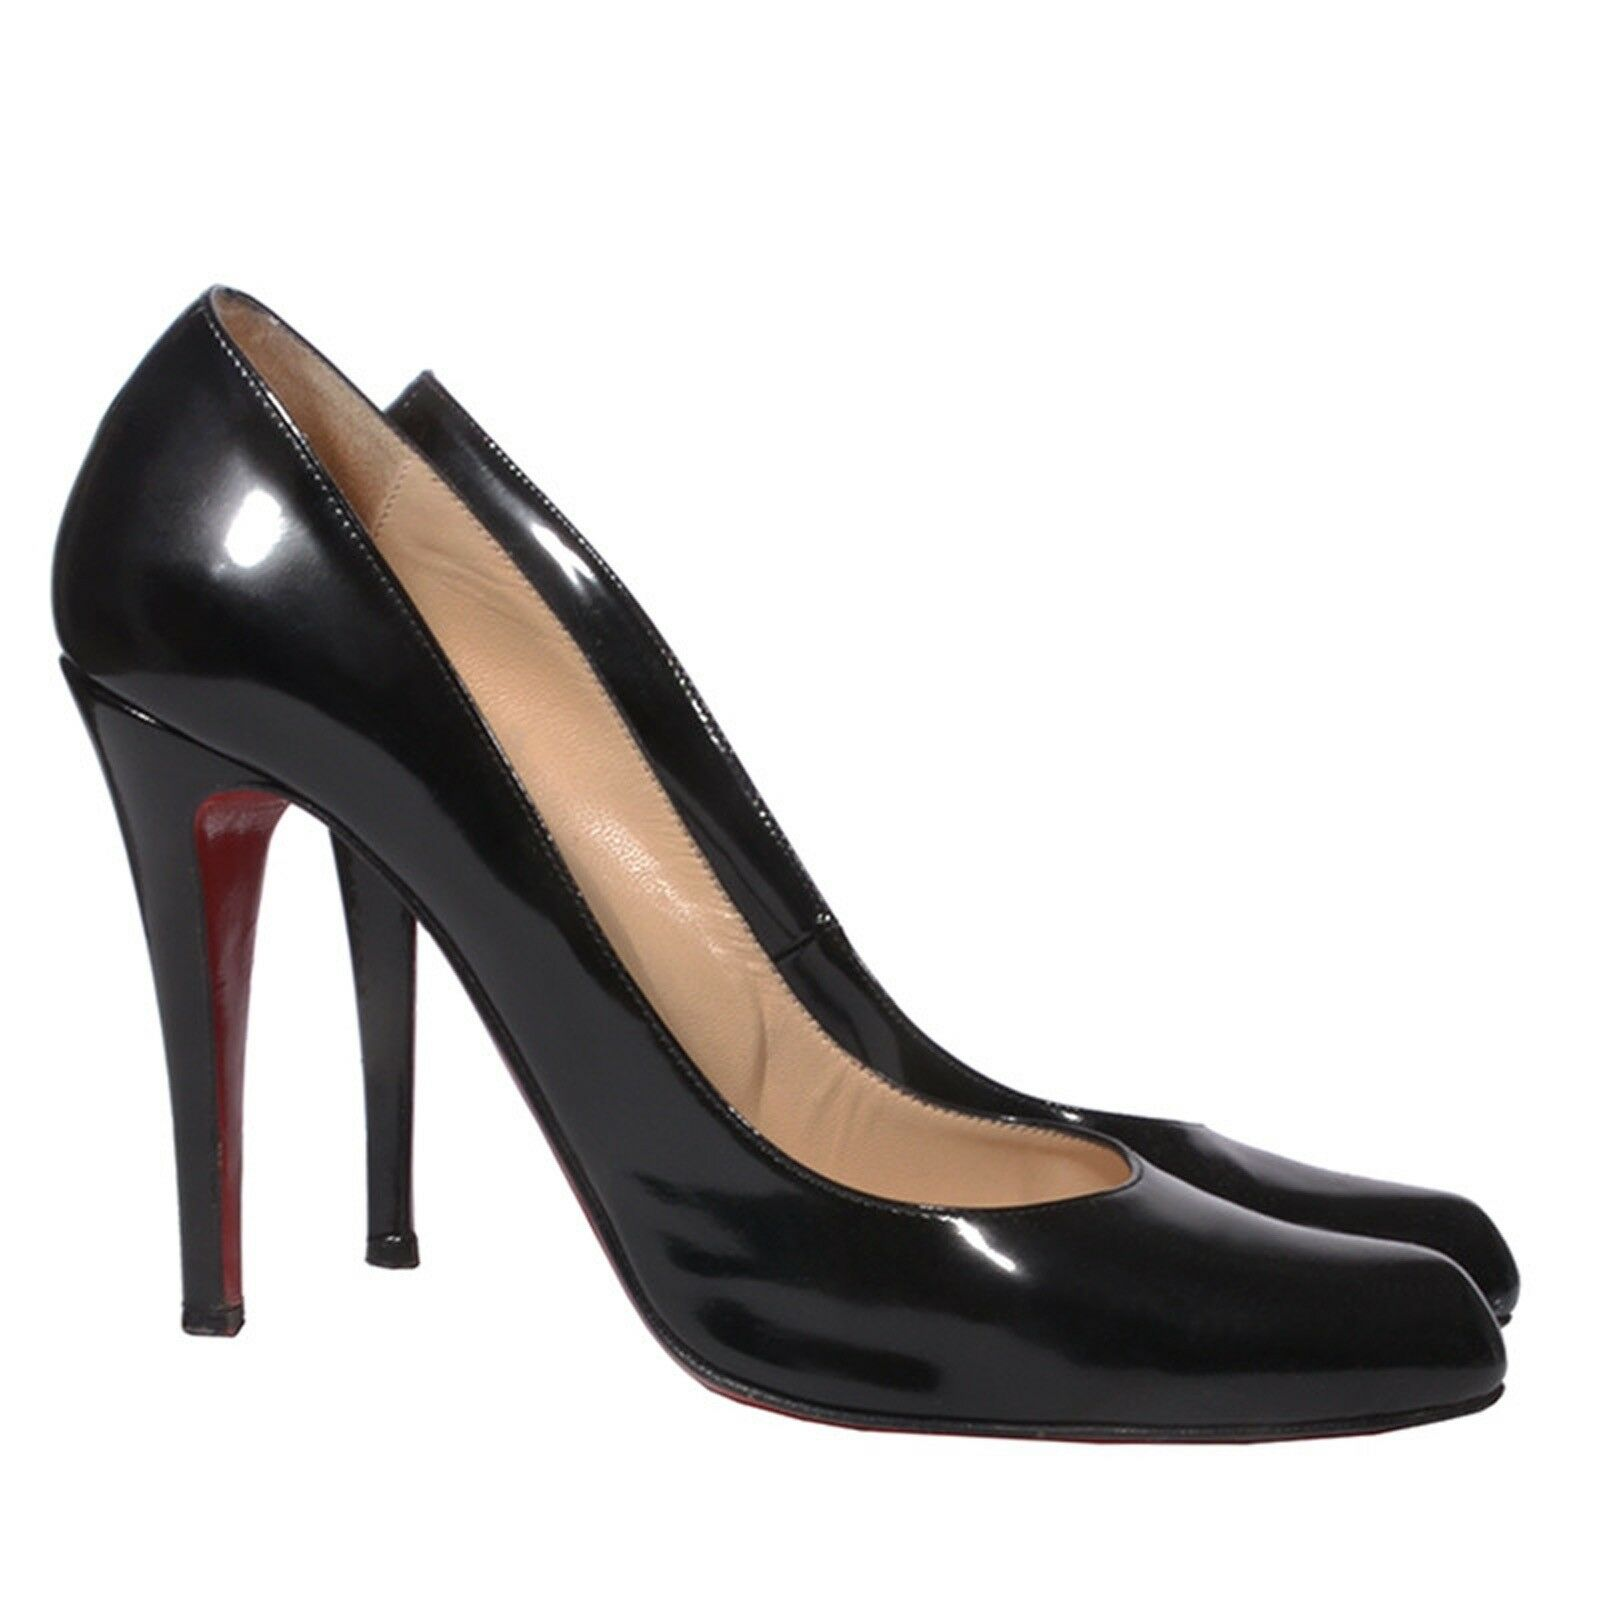 Christian Louboutin Simple Pump, taille 39,5 + box, difficlement NP environ -